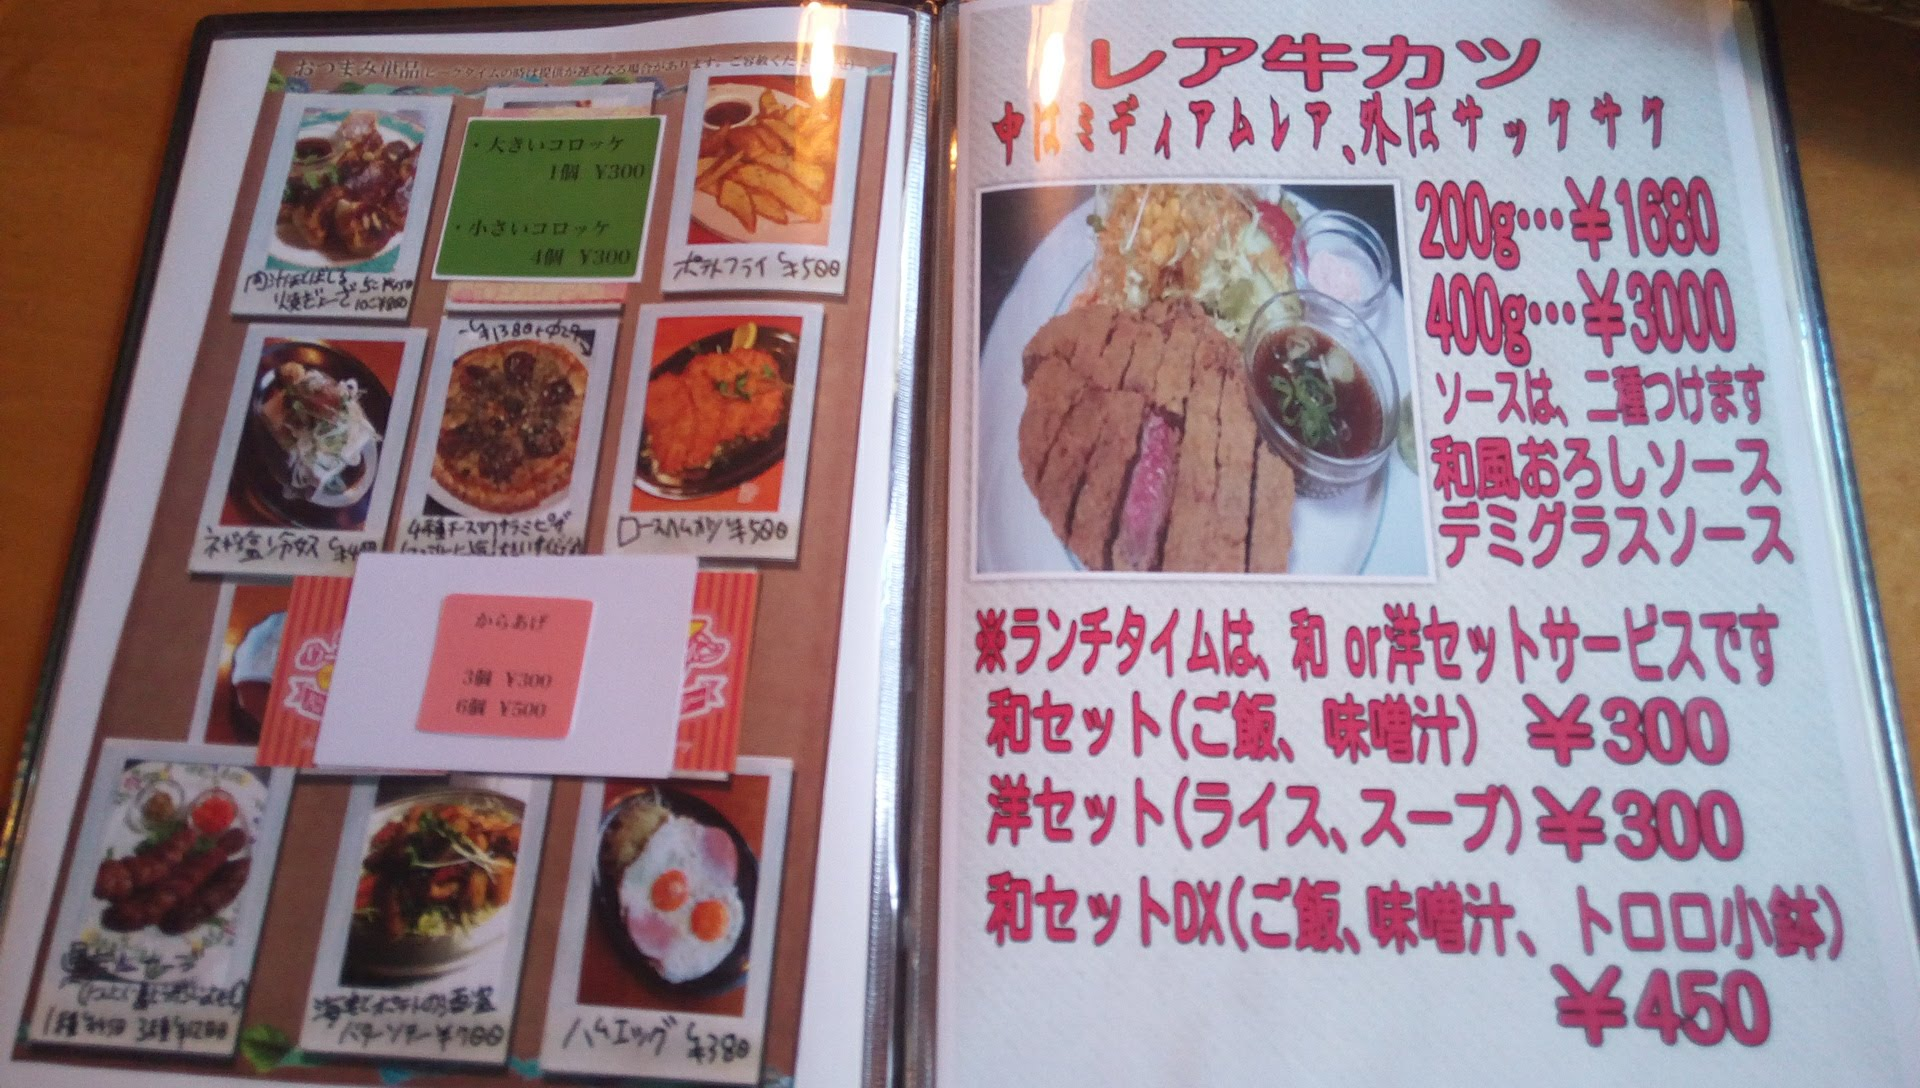 the menu of Nuji bonbon Z 2